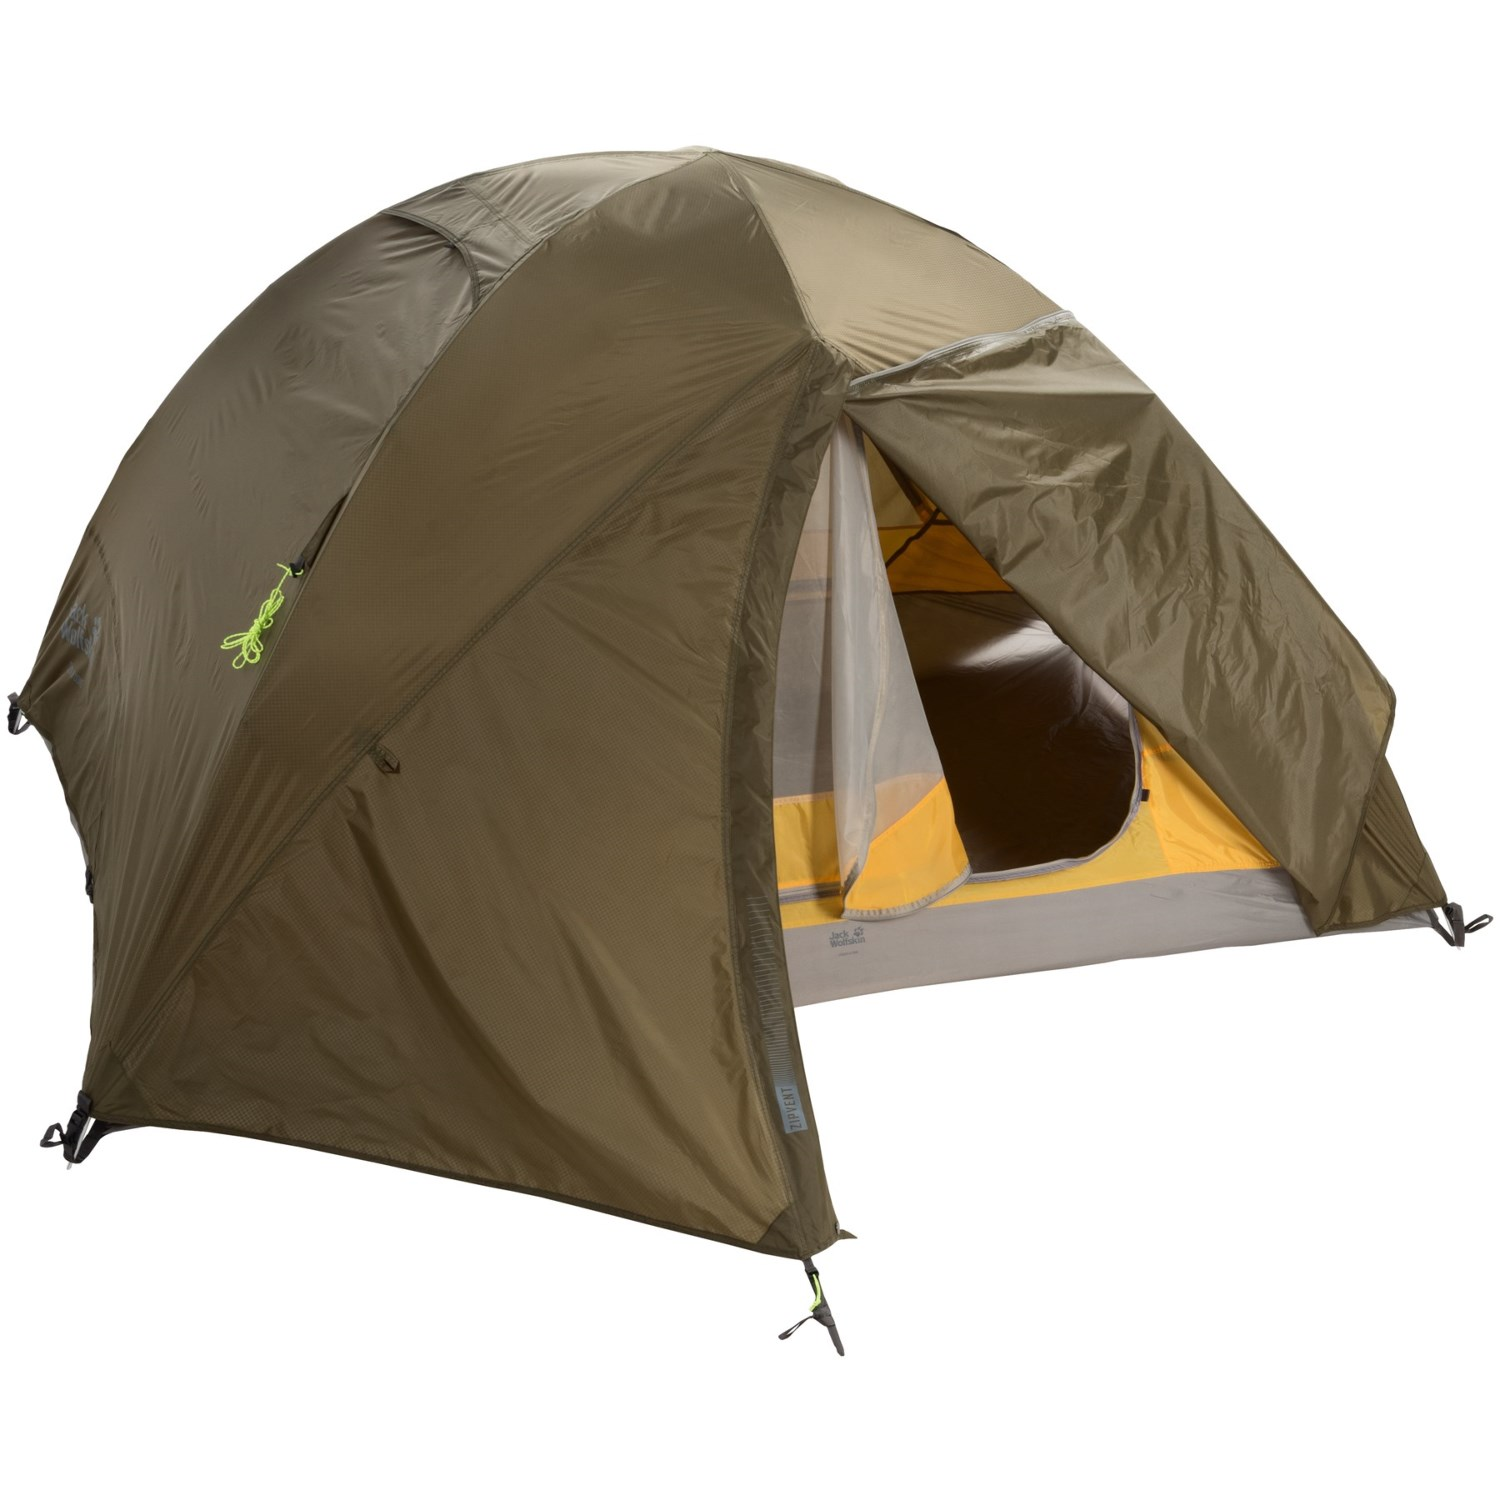 Jack Wolfskin Chinook Iii Tent 3 Person 3 Season Save 58